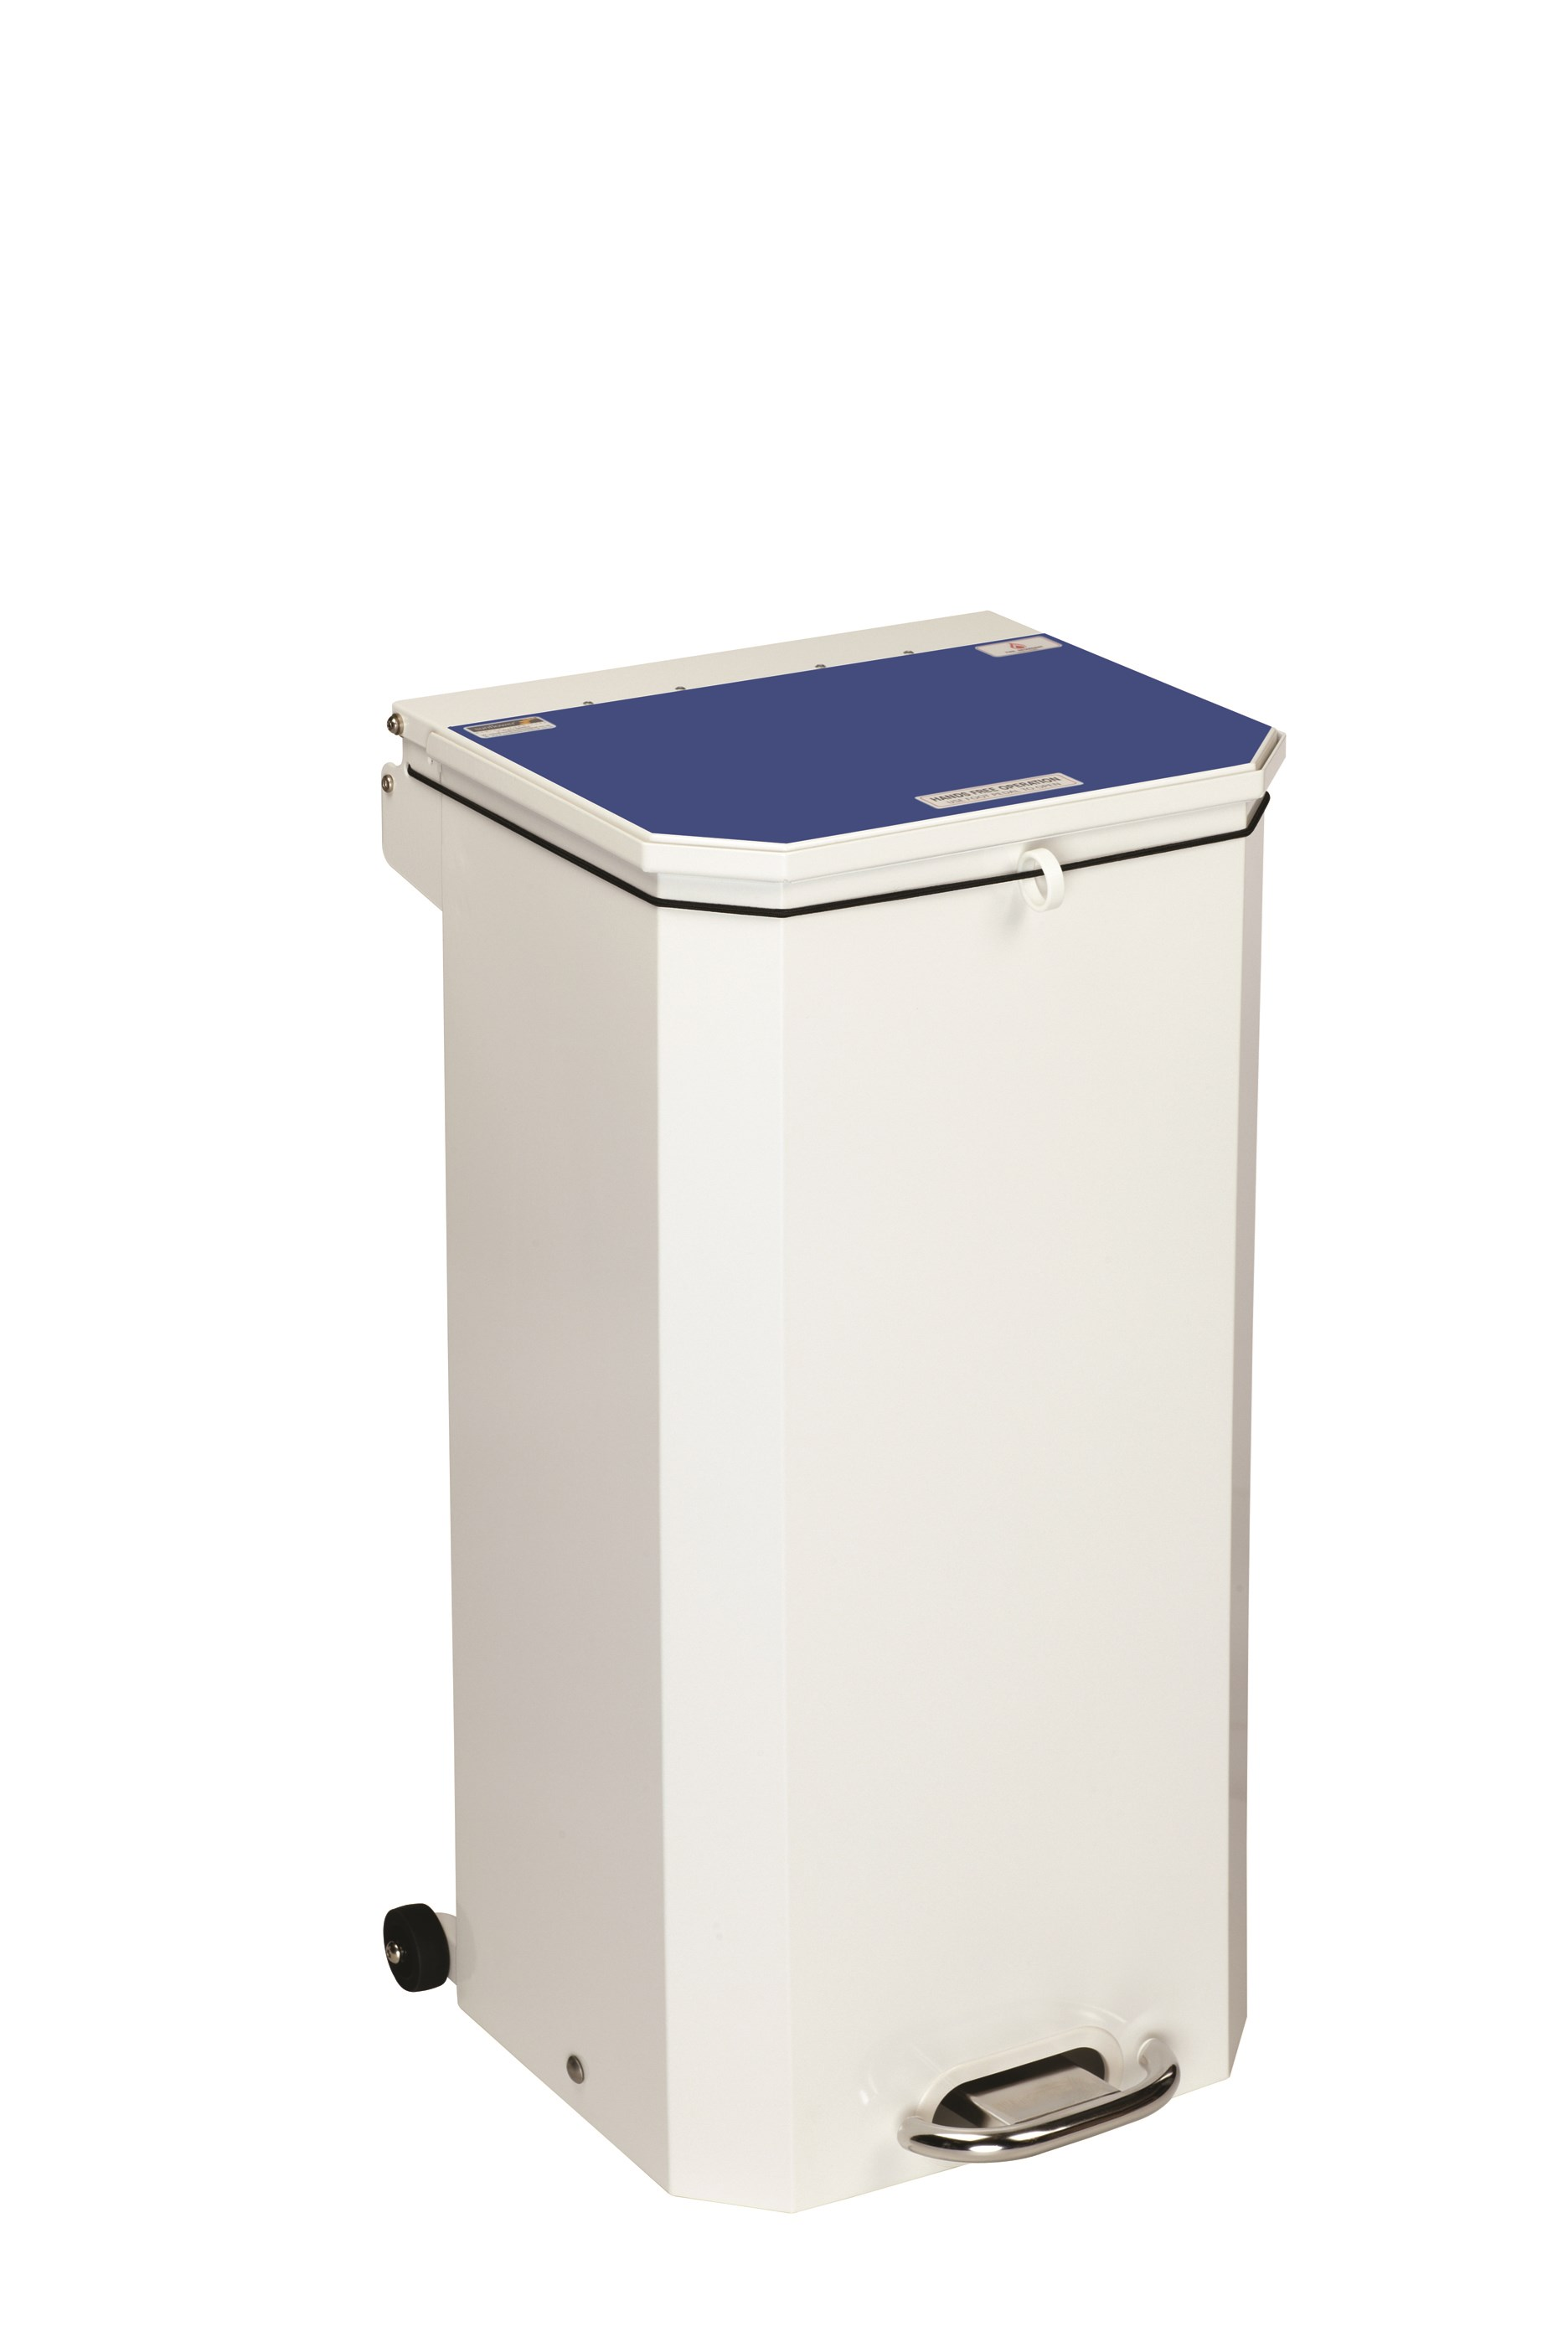 BIN PEDAL 70 LTR WITH BLUE LID USER DEFINED